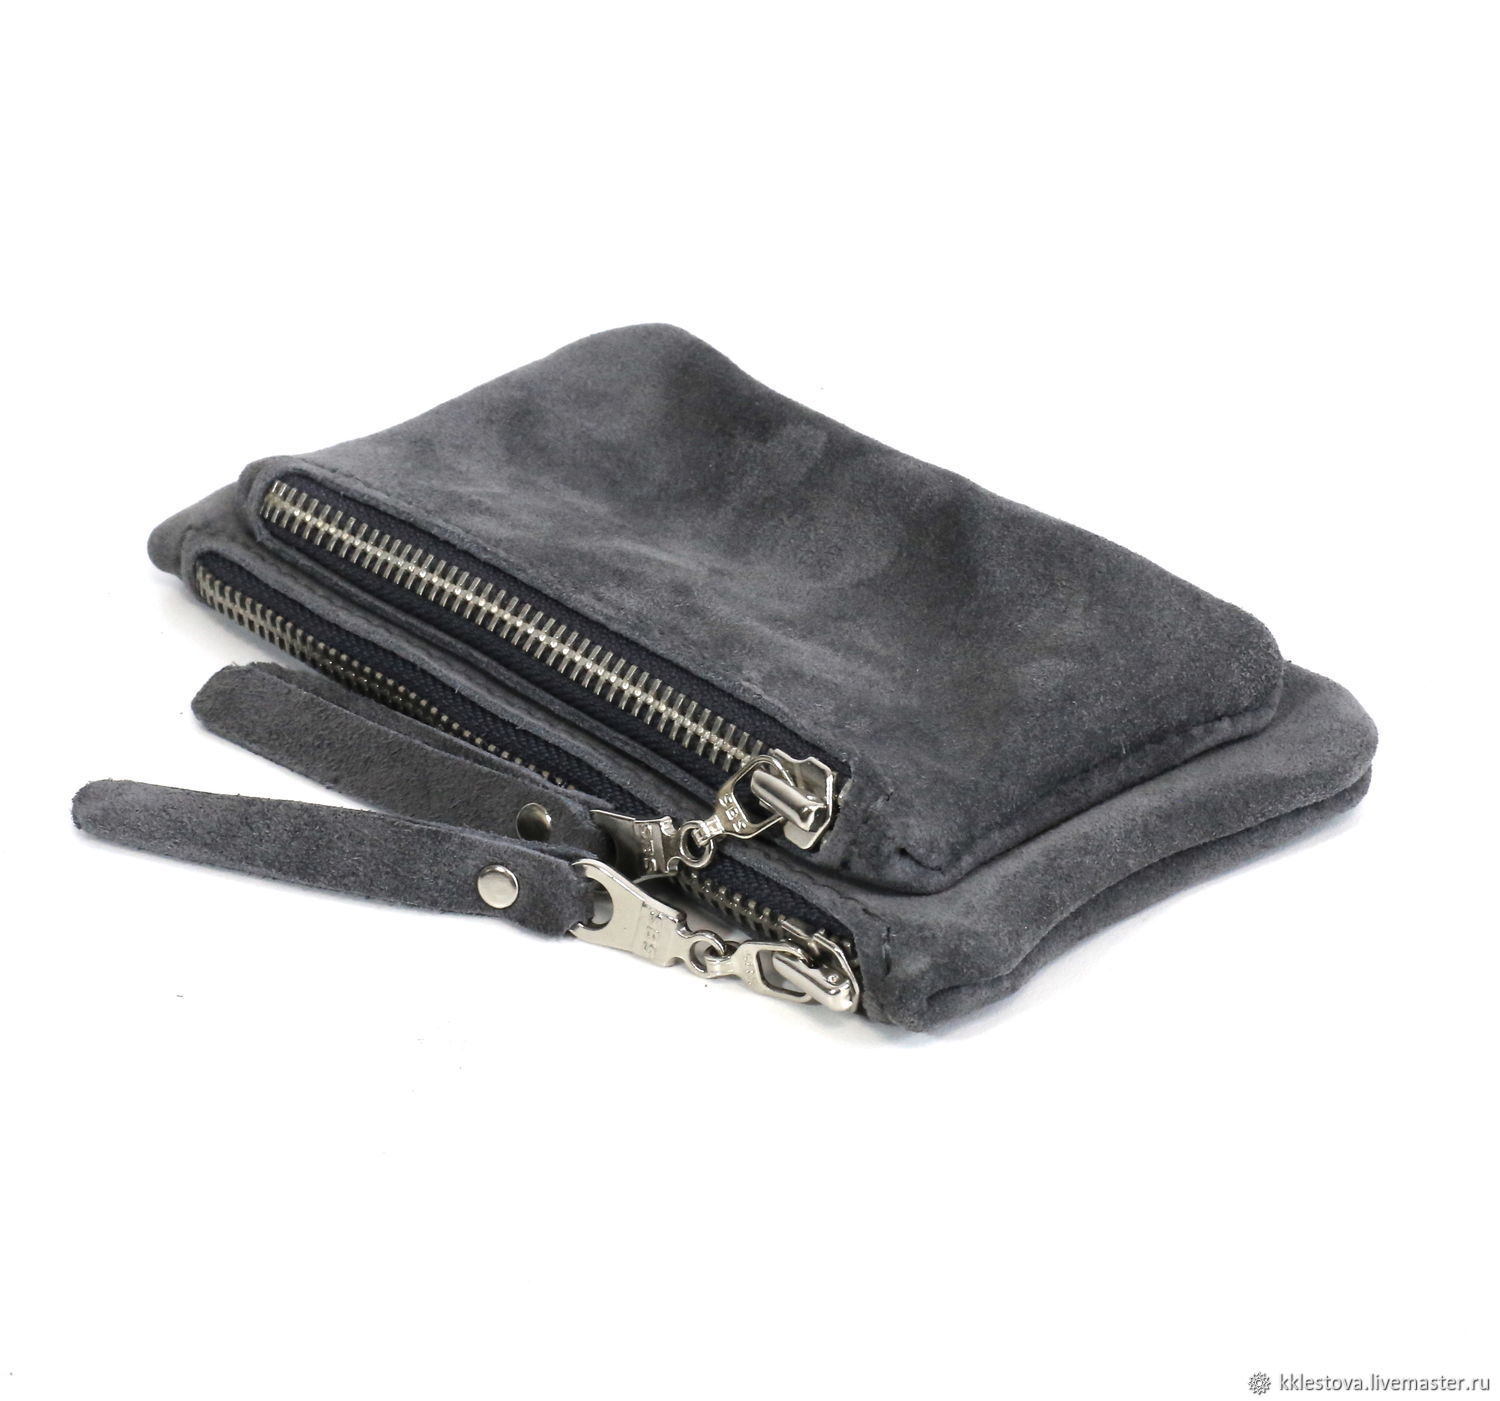 Double grey suede Wallet Pocket cosmetic Bag organizer Clutch leather, Wallets, Moscow,  Фото №1